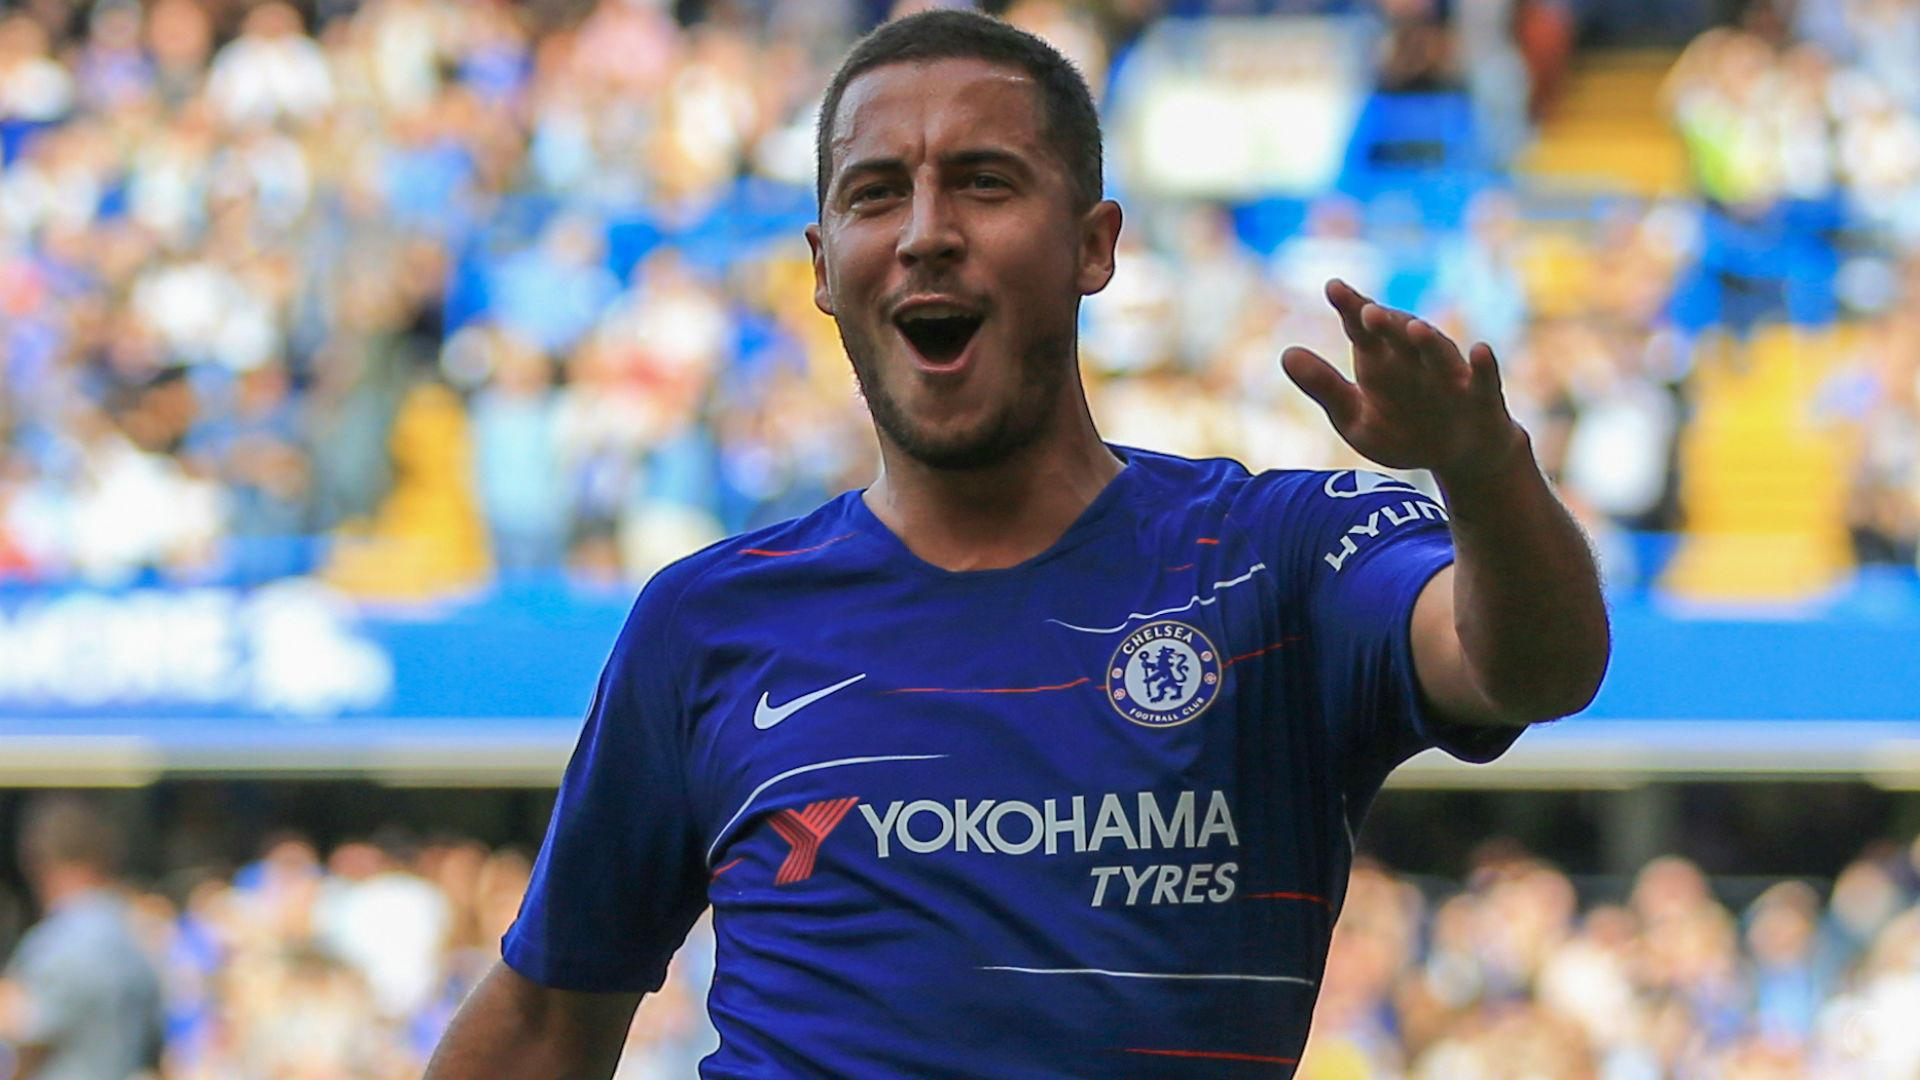 Hazard can be world's best if he stays at Chelsea, says Sarri